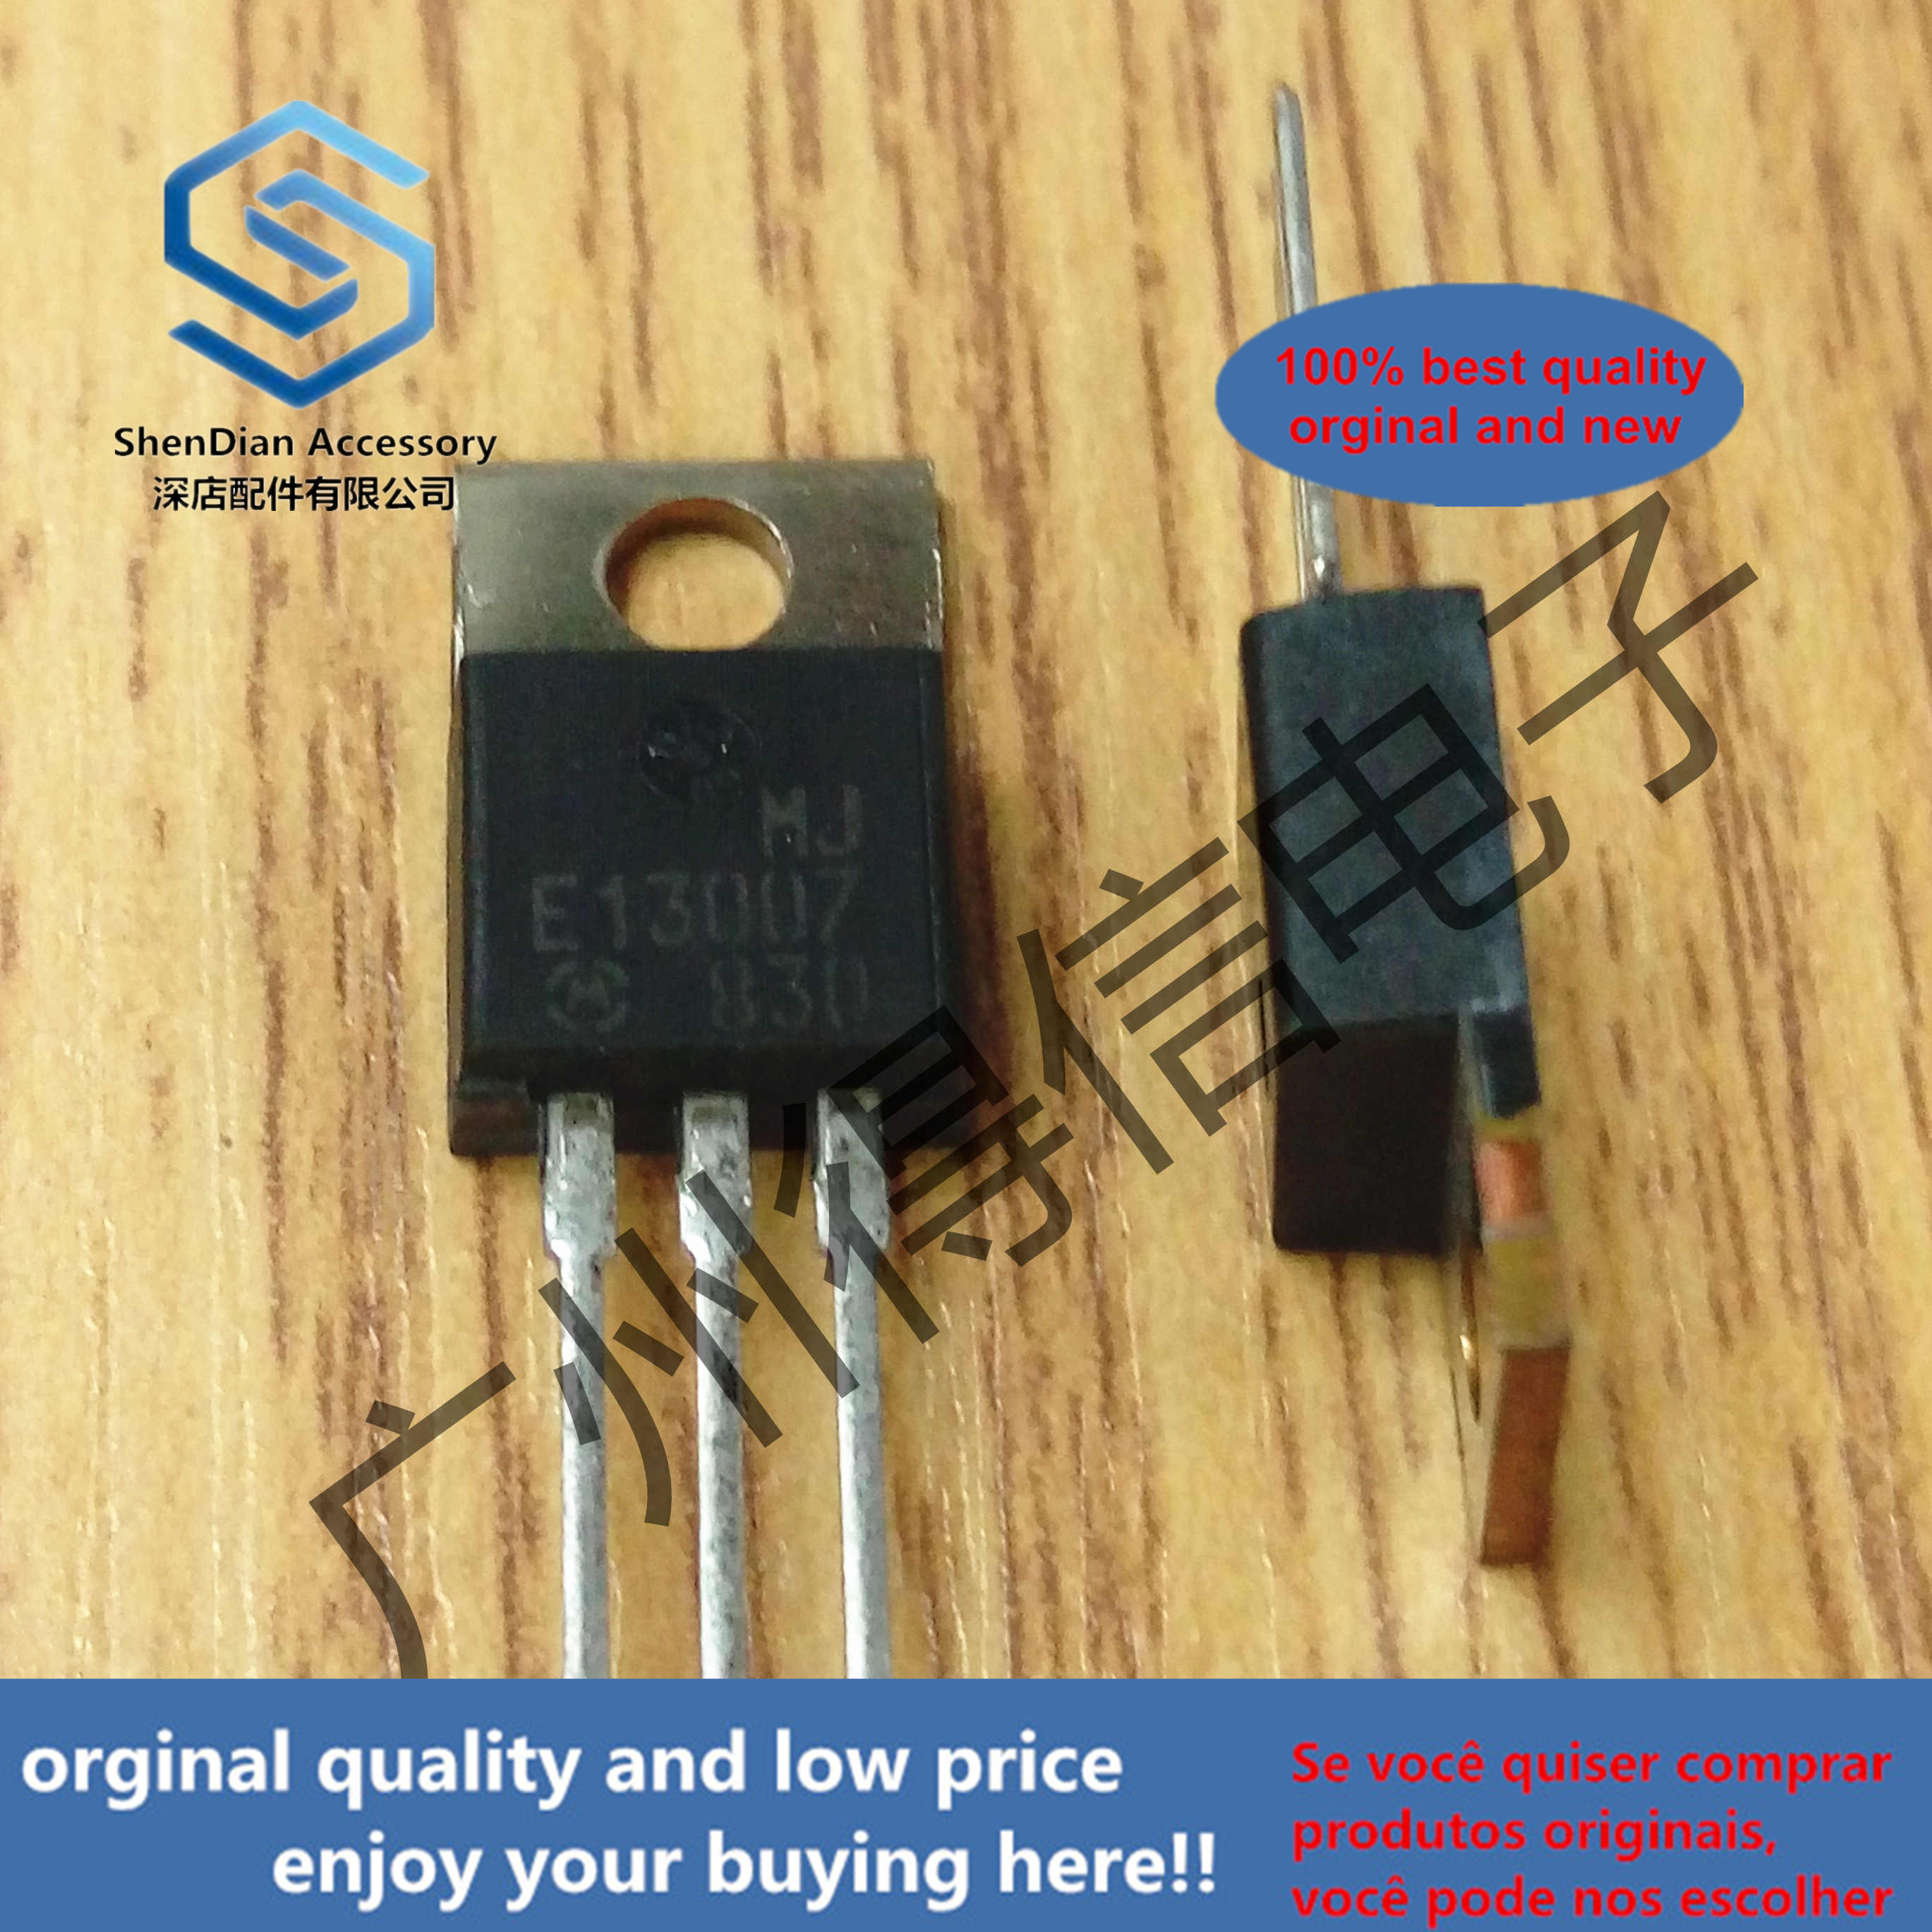 10pcs 100% Orginal New MJE13007 13007 TO-220  POWER TRANSISTOR 8.0 AMPERES 400 VOLTS 80/40 WATTS Real Photo